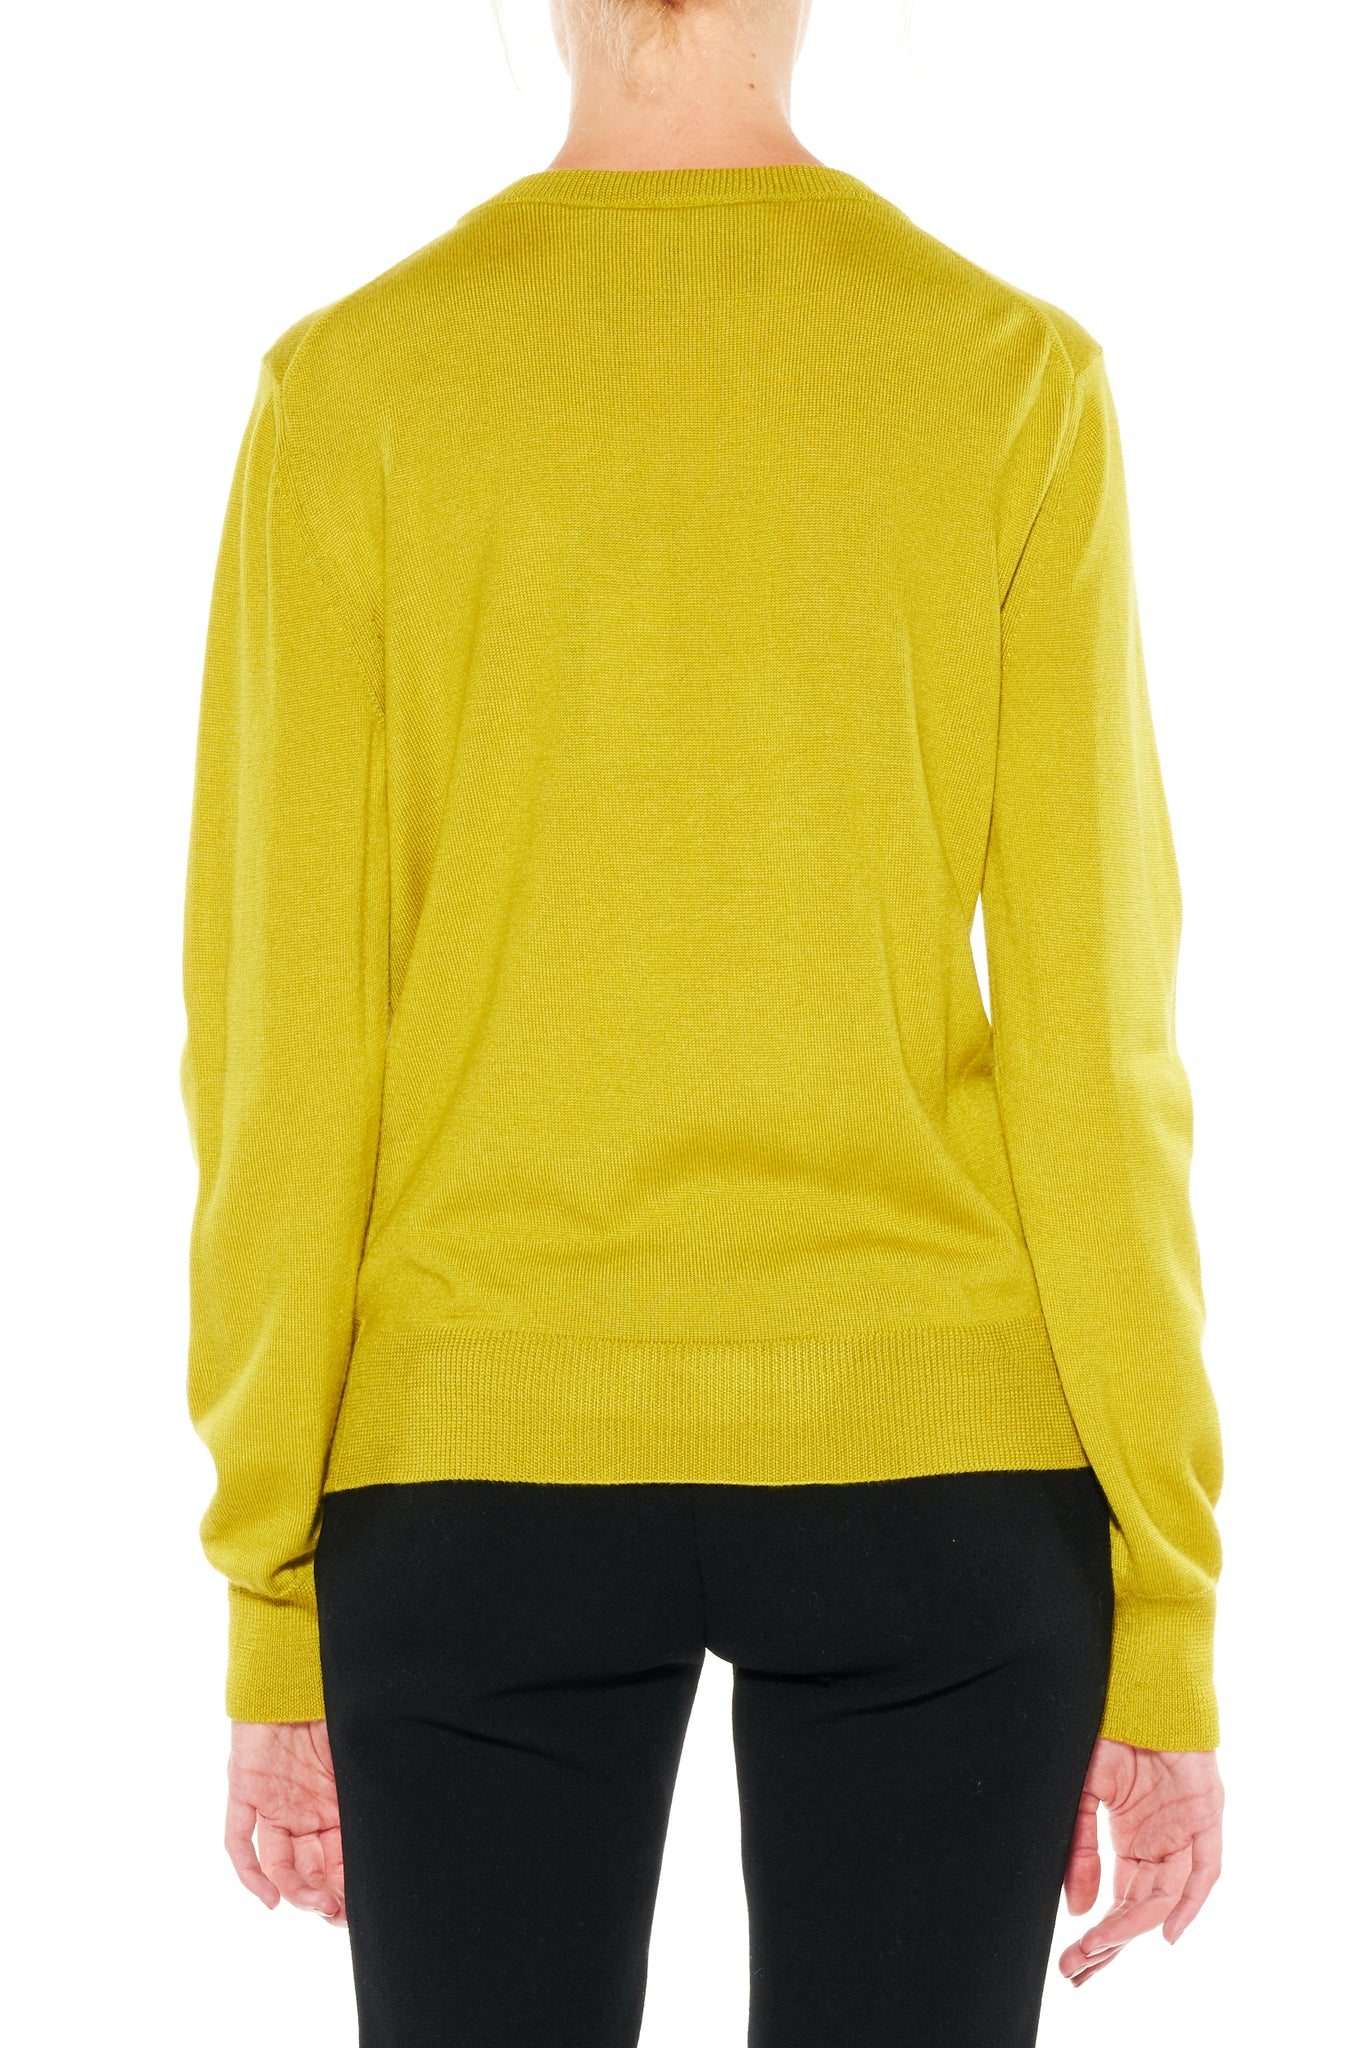 OLIVES CASHMERE PULLOVER - Women's Knits - Libertine